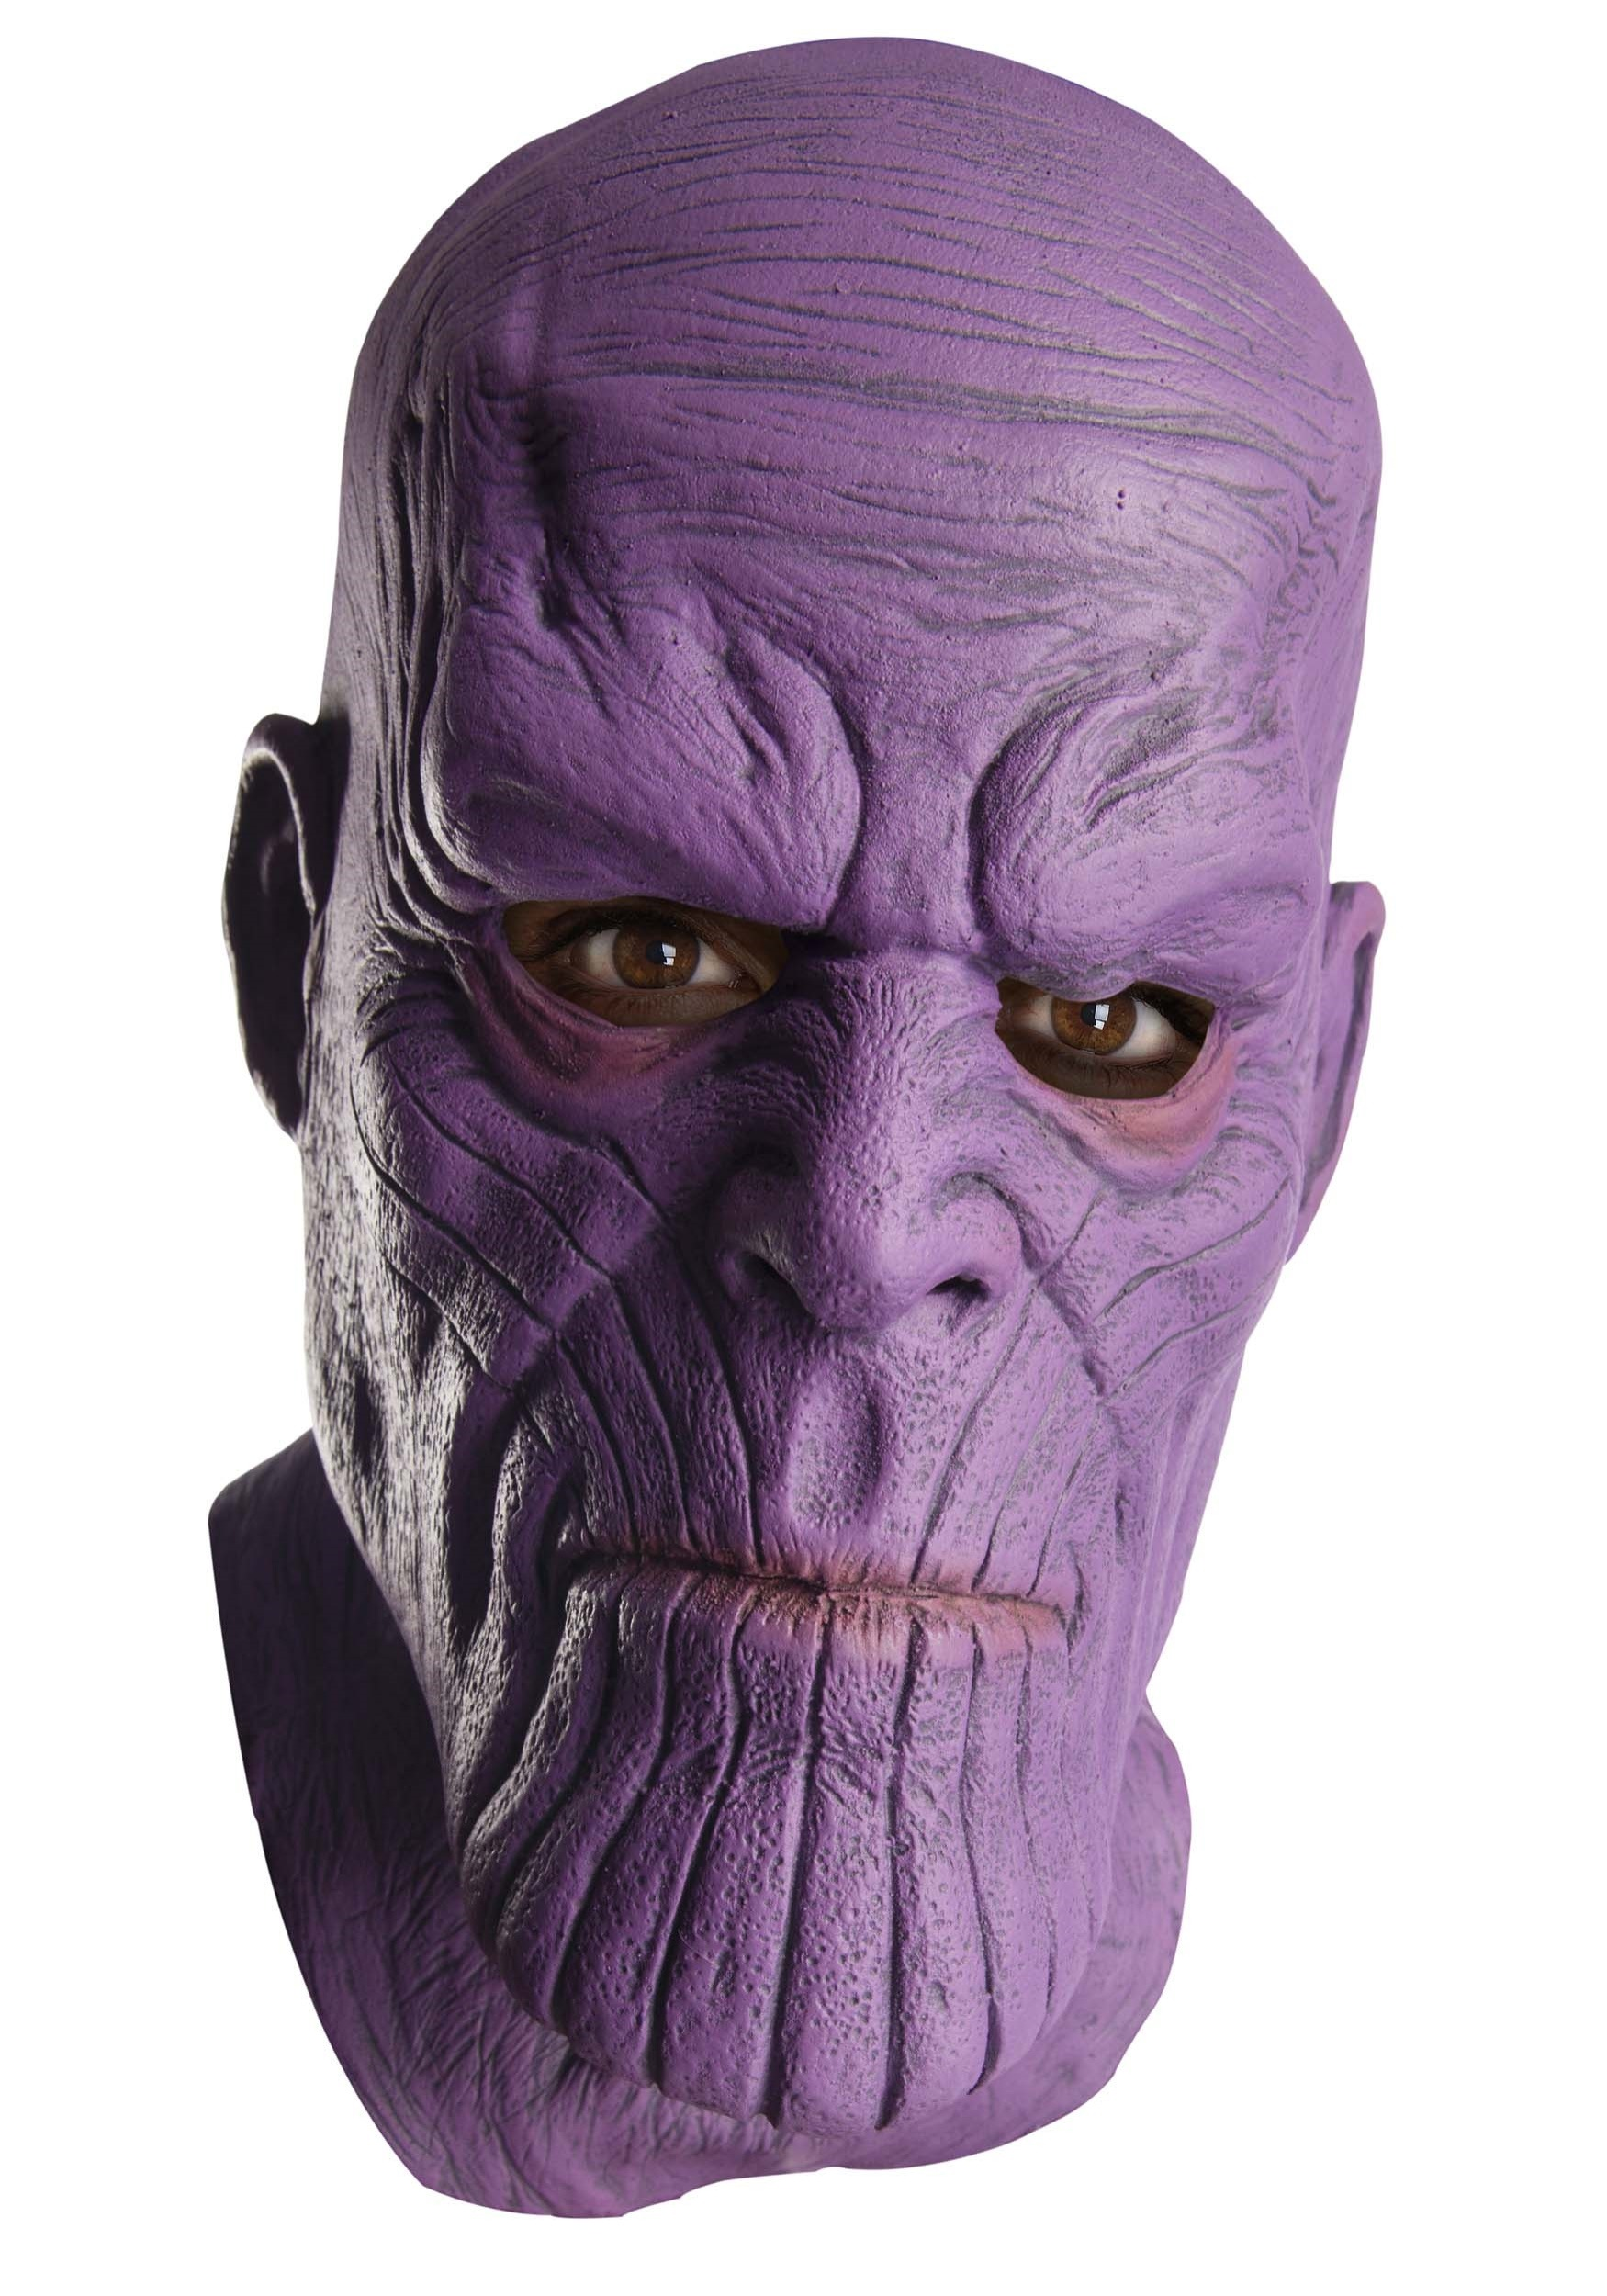 Marvel Avengers Infinity War Thanos Latex Mask For Adults Batman Adult